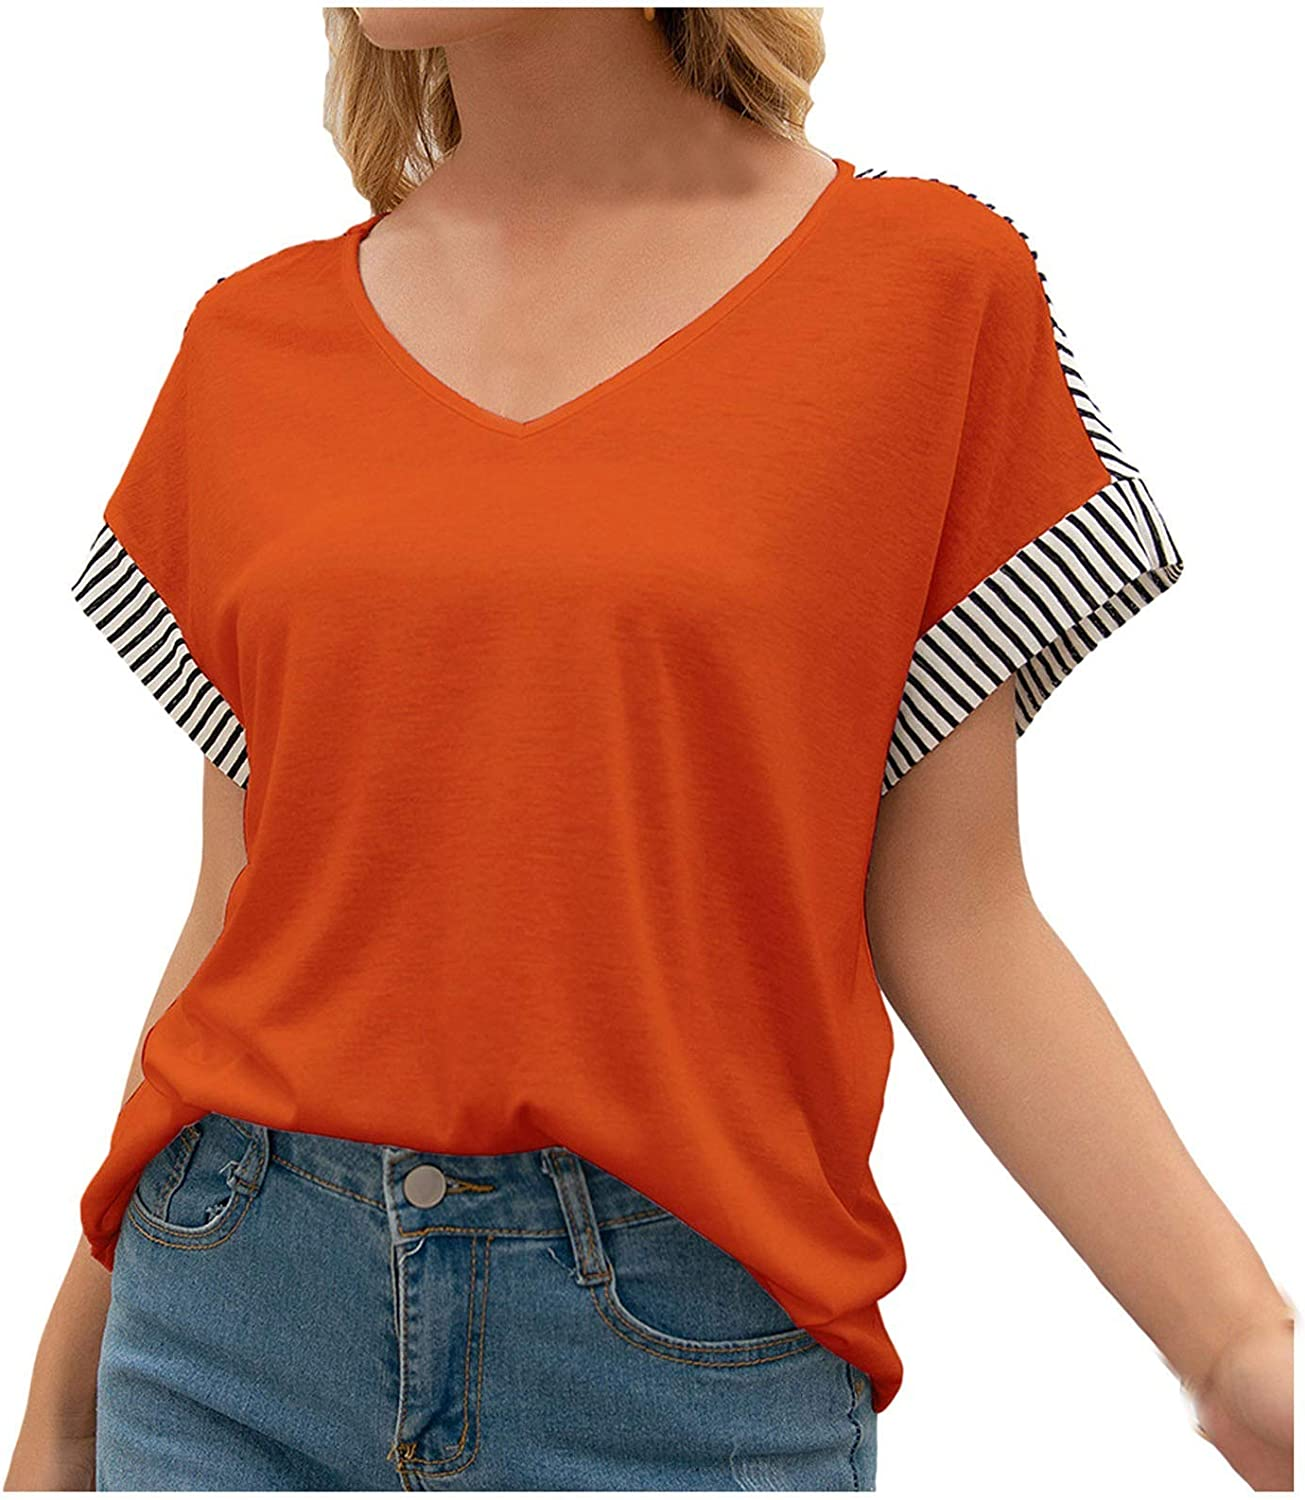 Tops for Women Women's Casual V-Neck Splicing Loose Collision Color Short-Sleeved T-Shirt Blouses